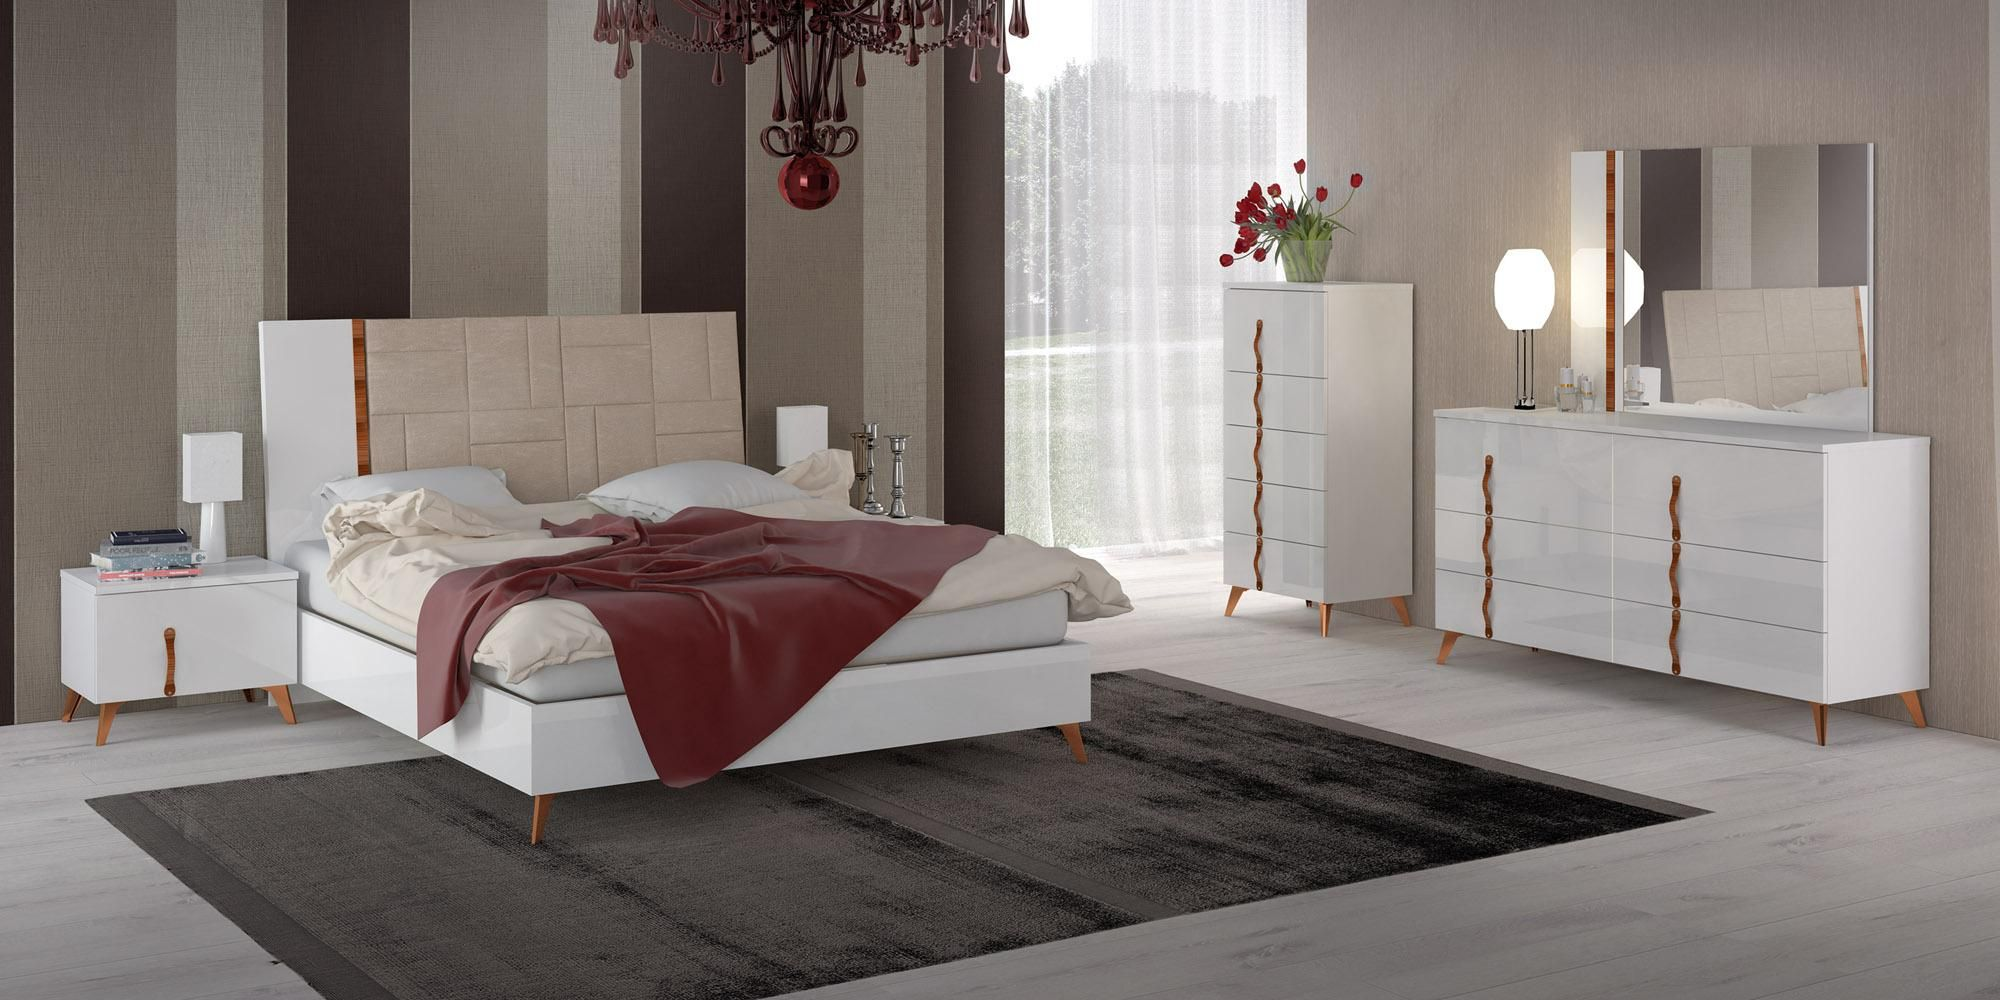 Best Made In Italy Leather Elite Modern Bedroom Sets With Extra 400 x 300